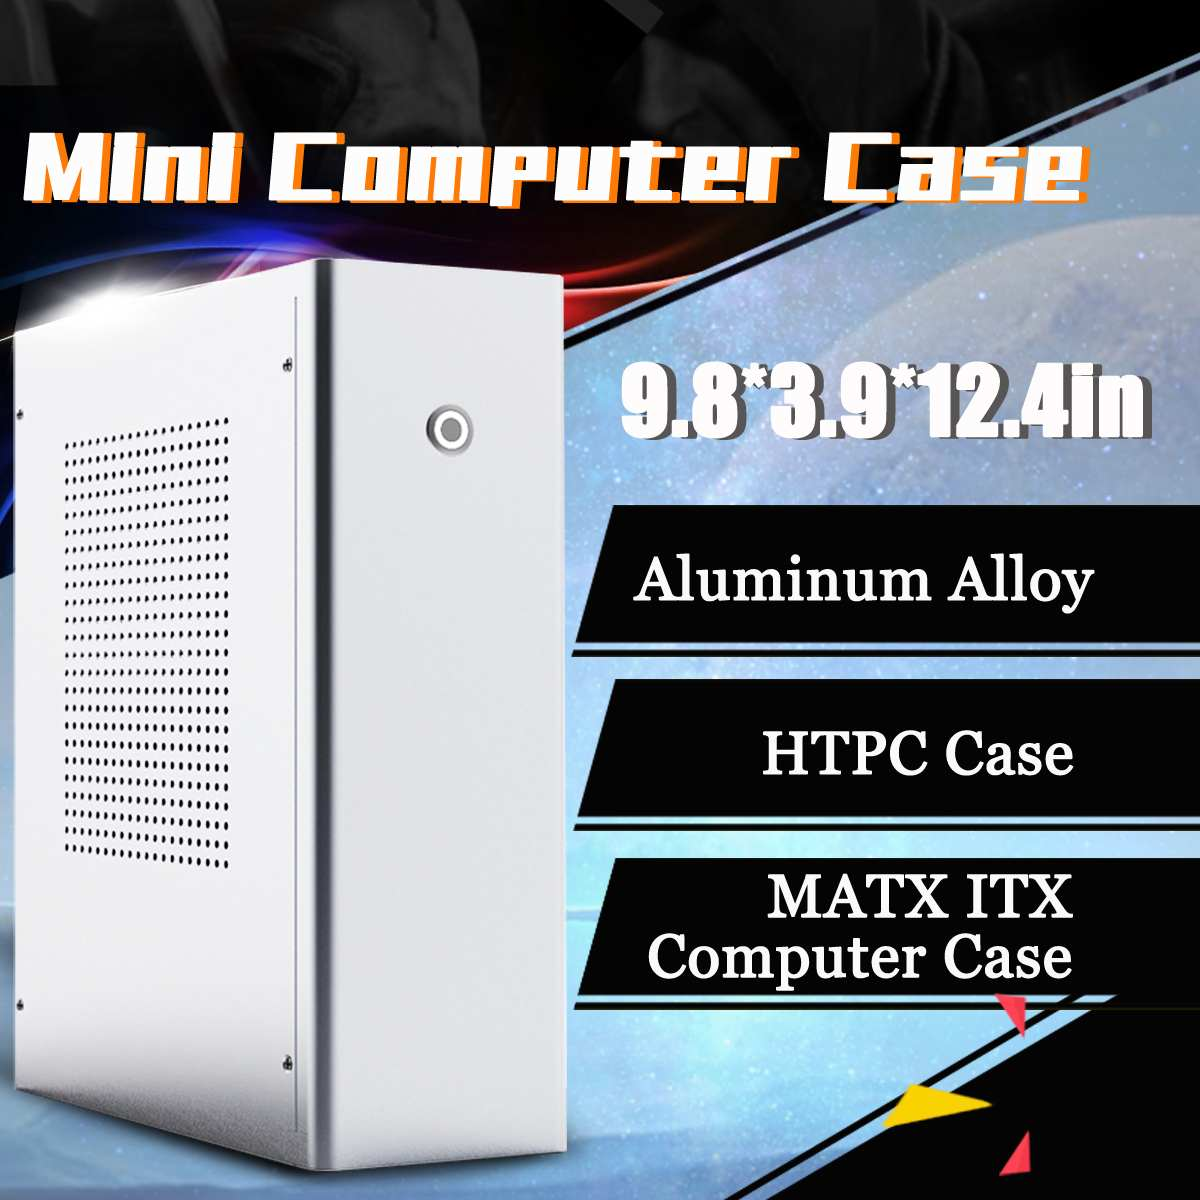 M1 Aluminum Alloy mATX ITX Computer Case HTPC Case Support 1U Flex Power Supply 250x100x315mm Super Thin Body Design